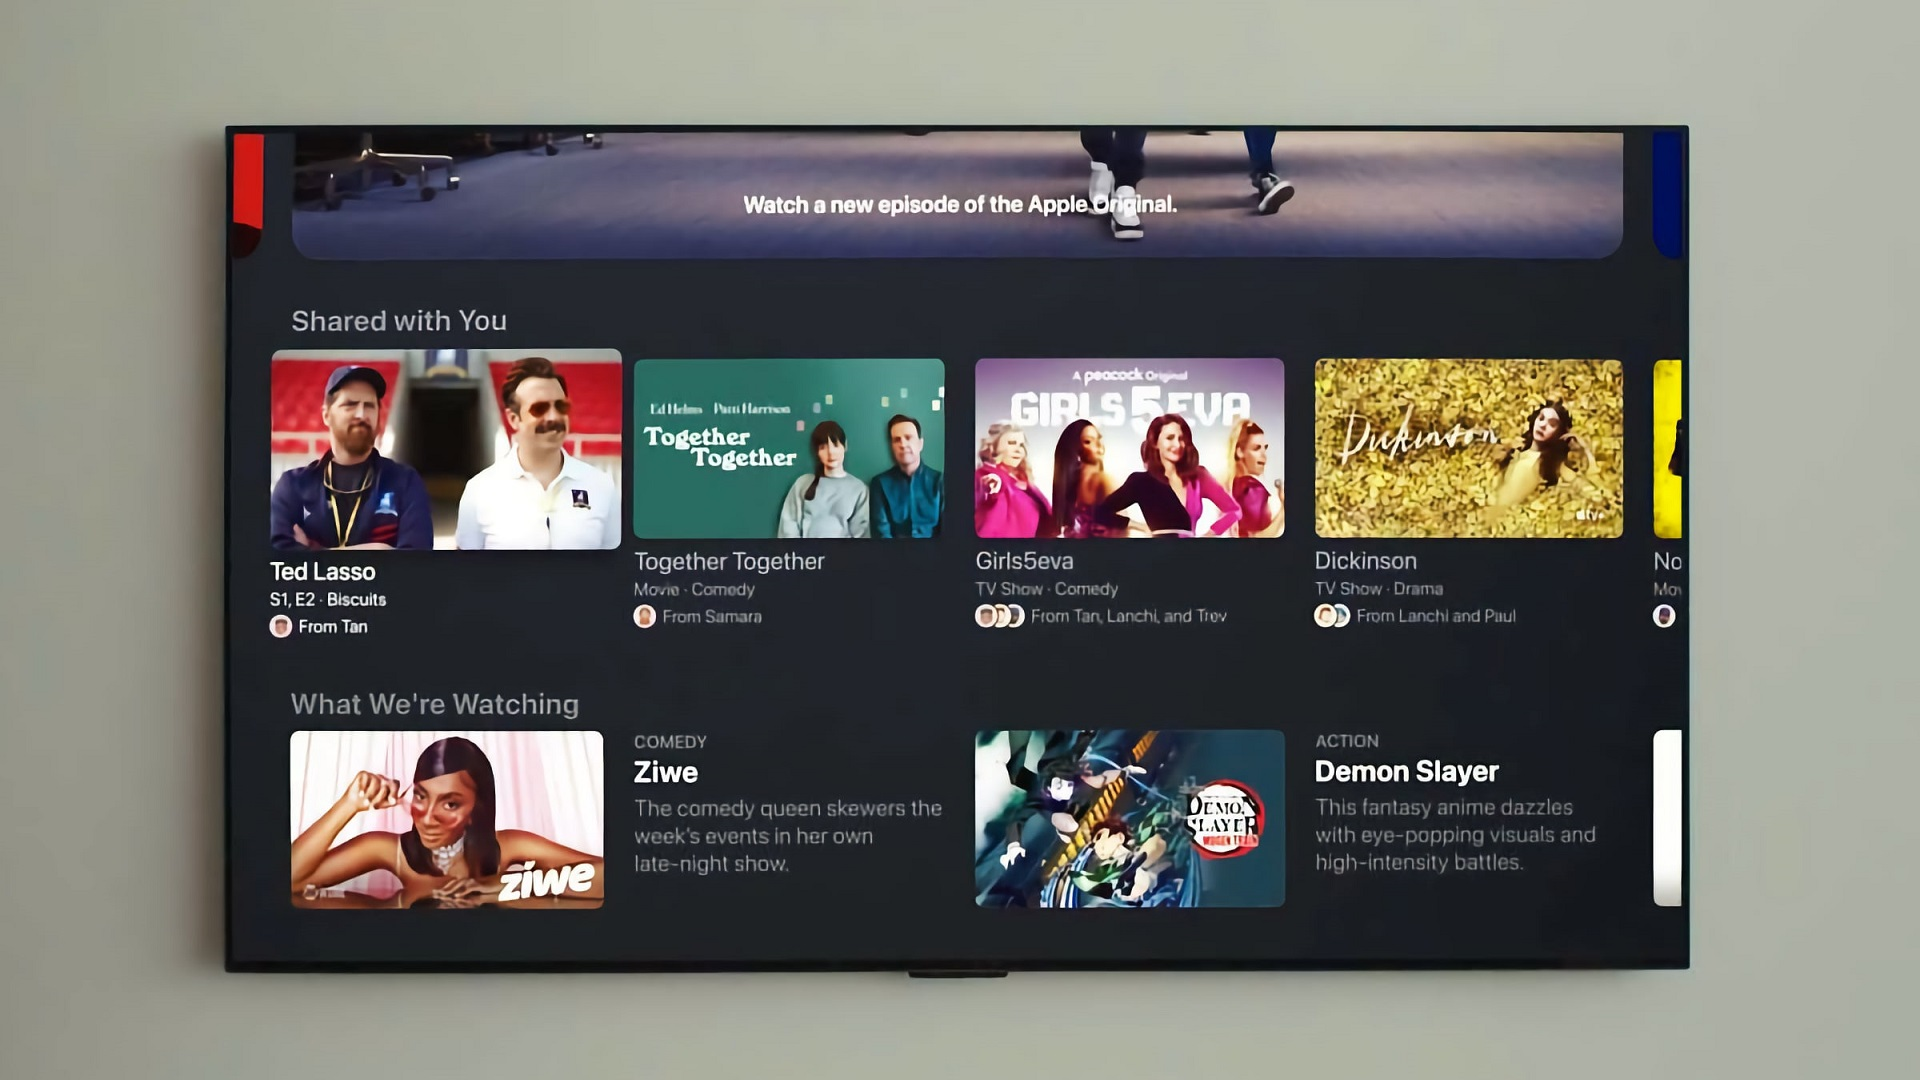 Apple TV app Shared with you